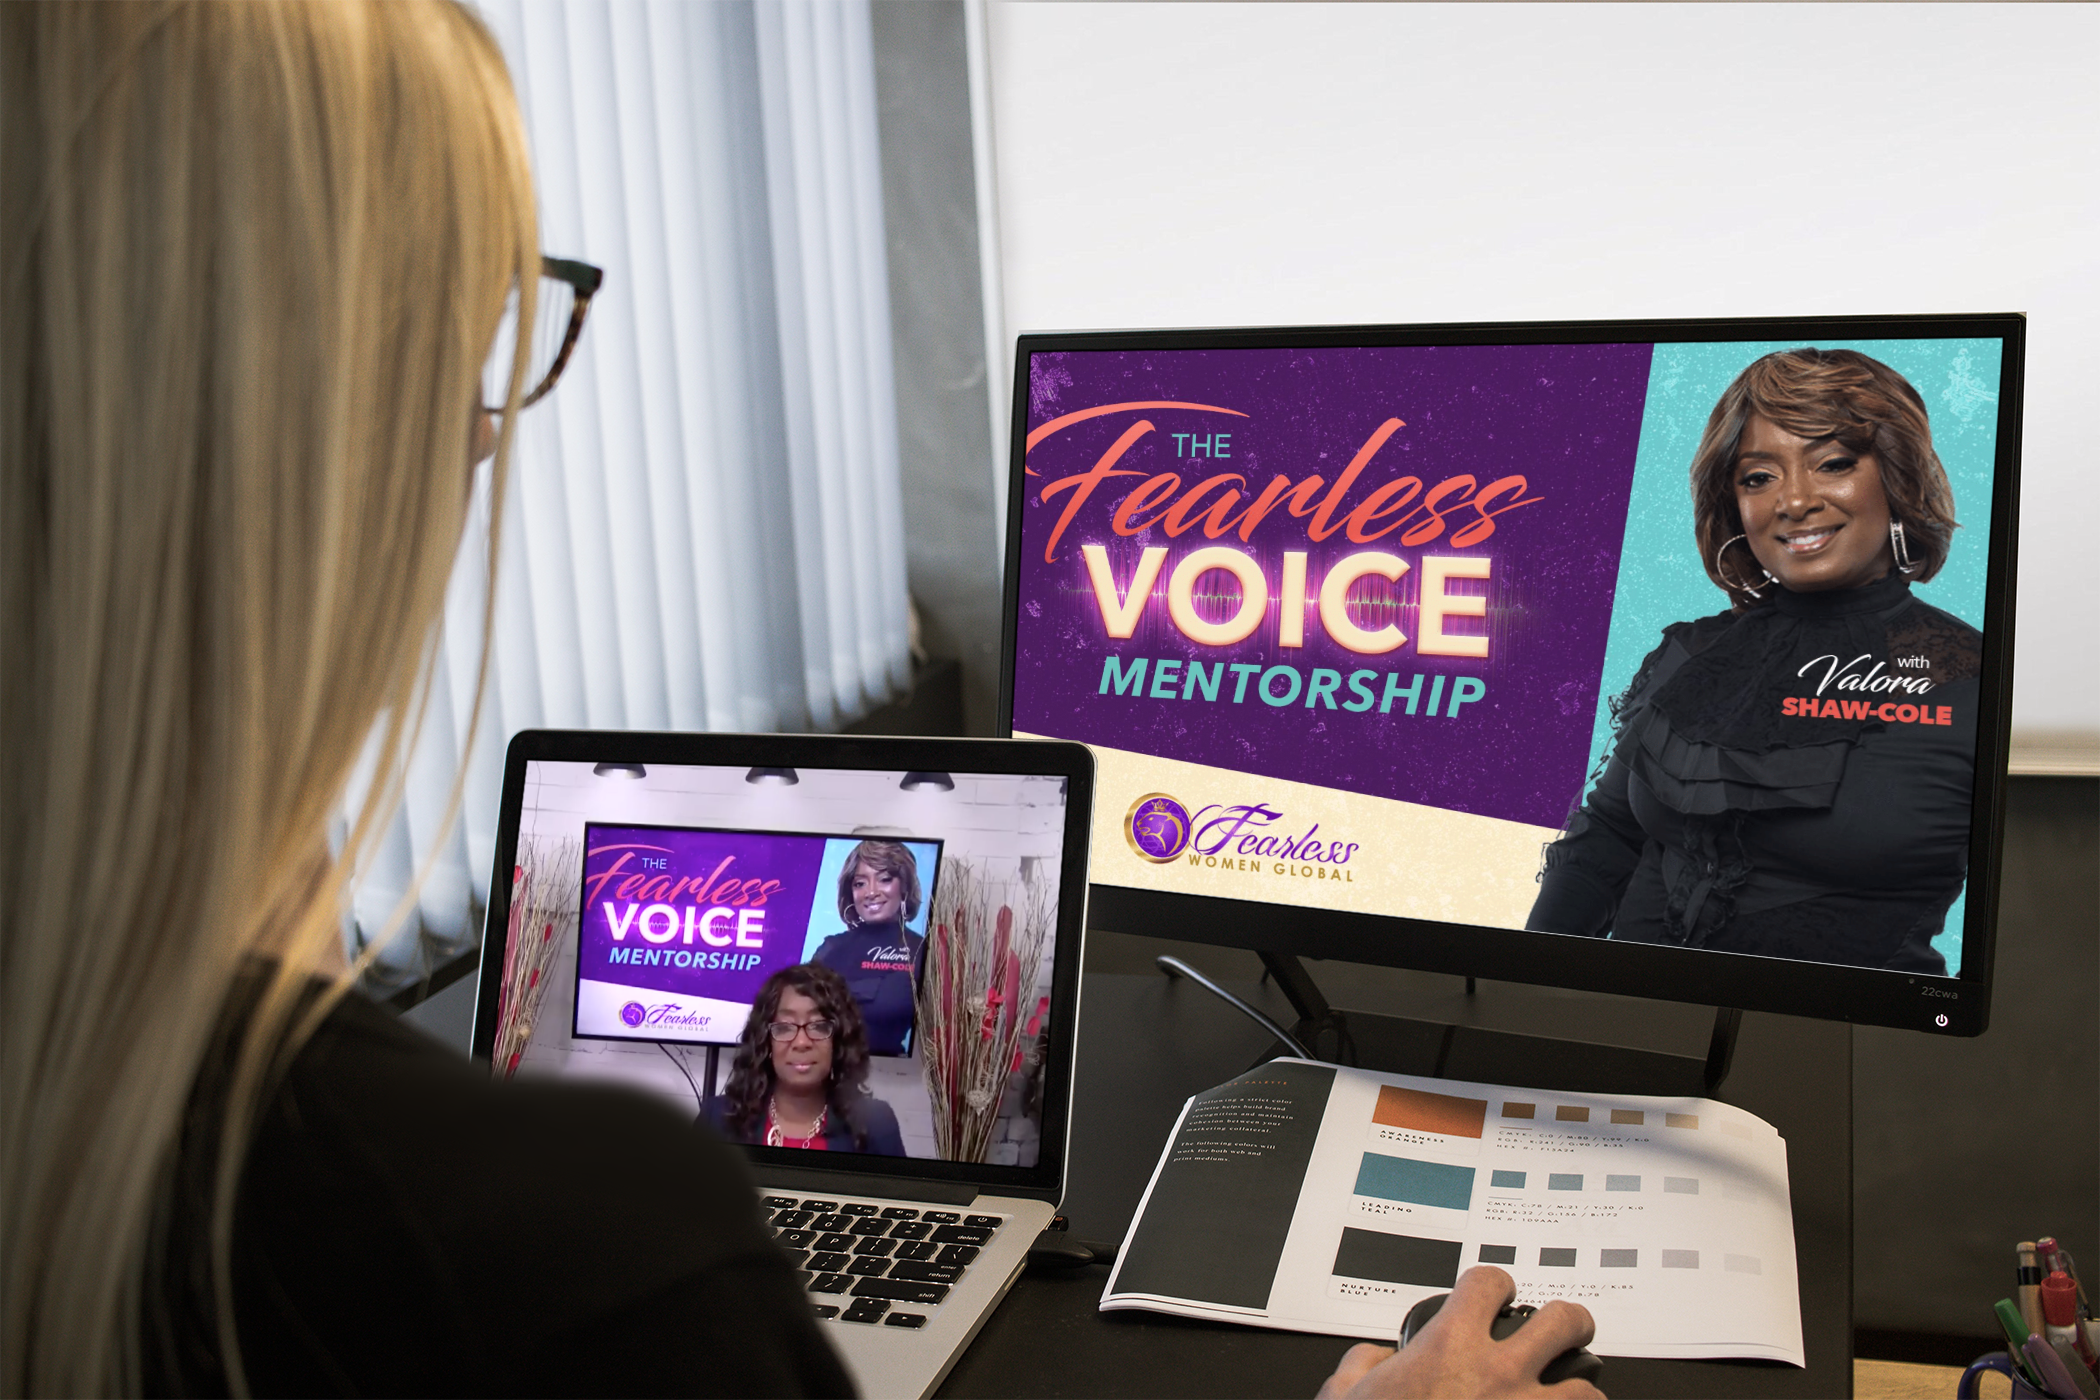 Fearless Voice Mentorship